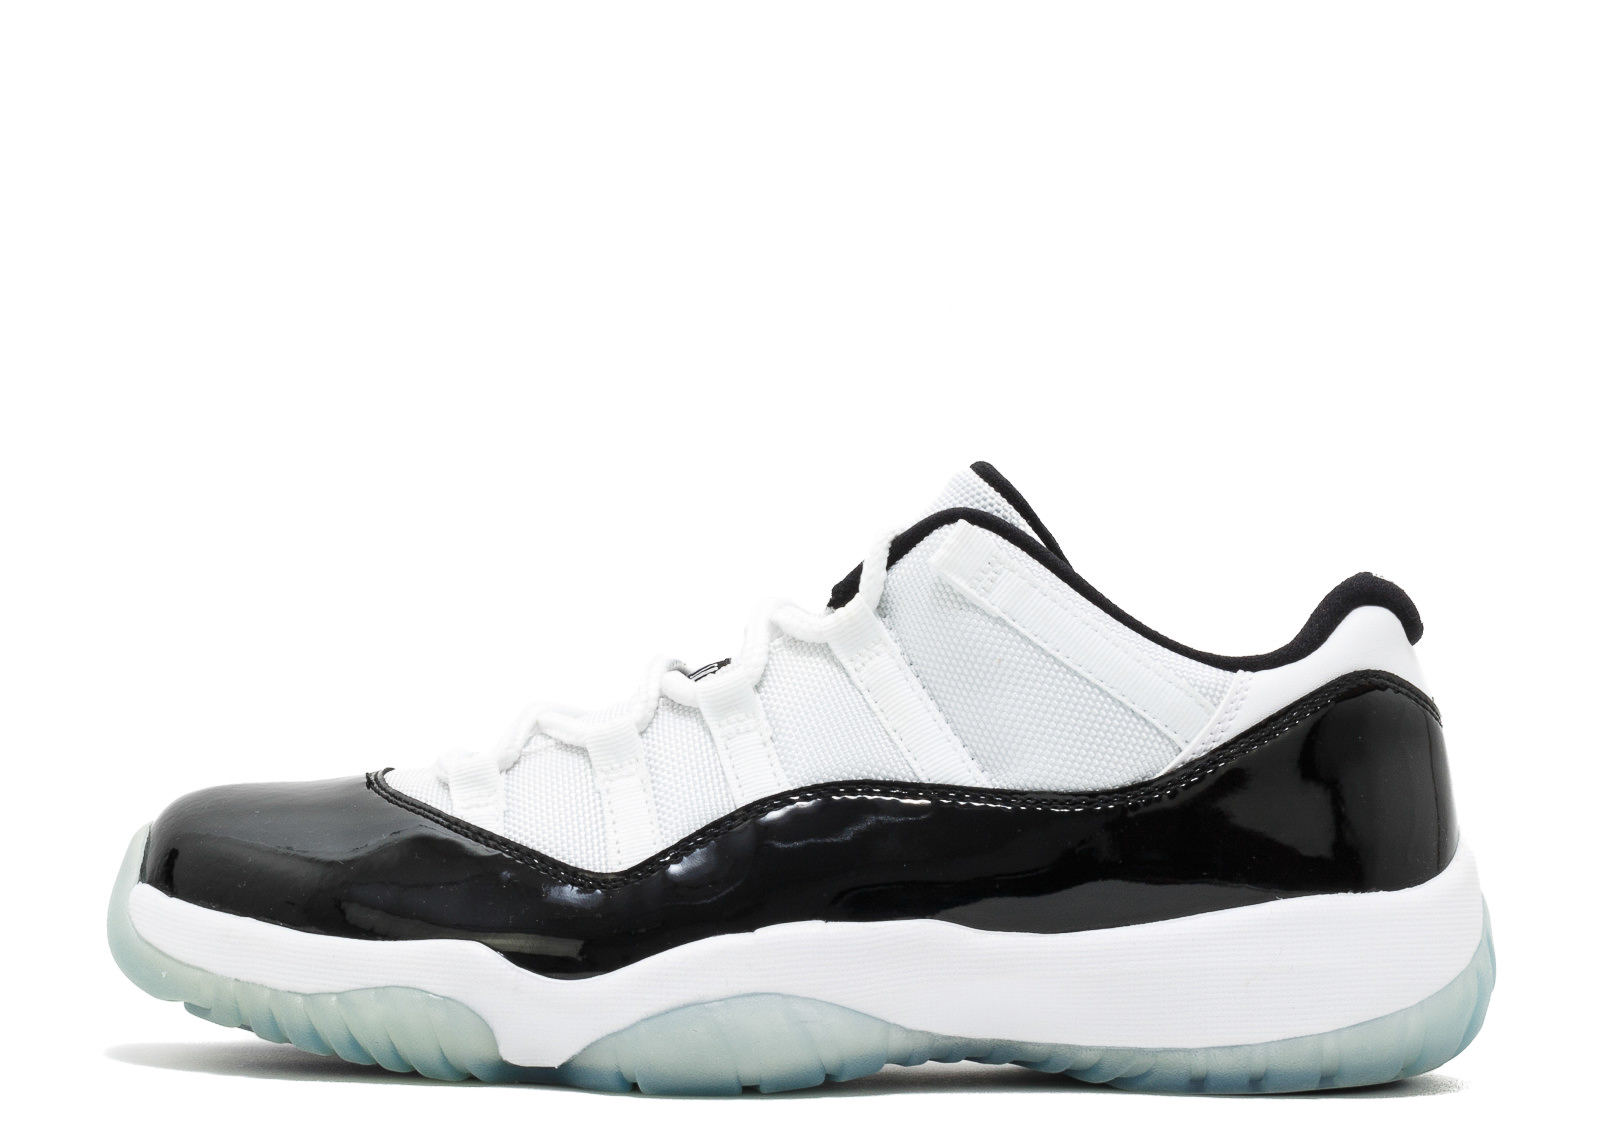 Air Jordan 11 Retro Low 'Concord' 528895 153